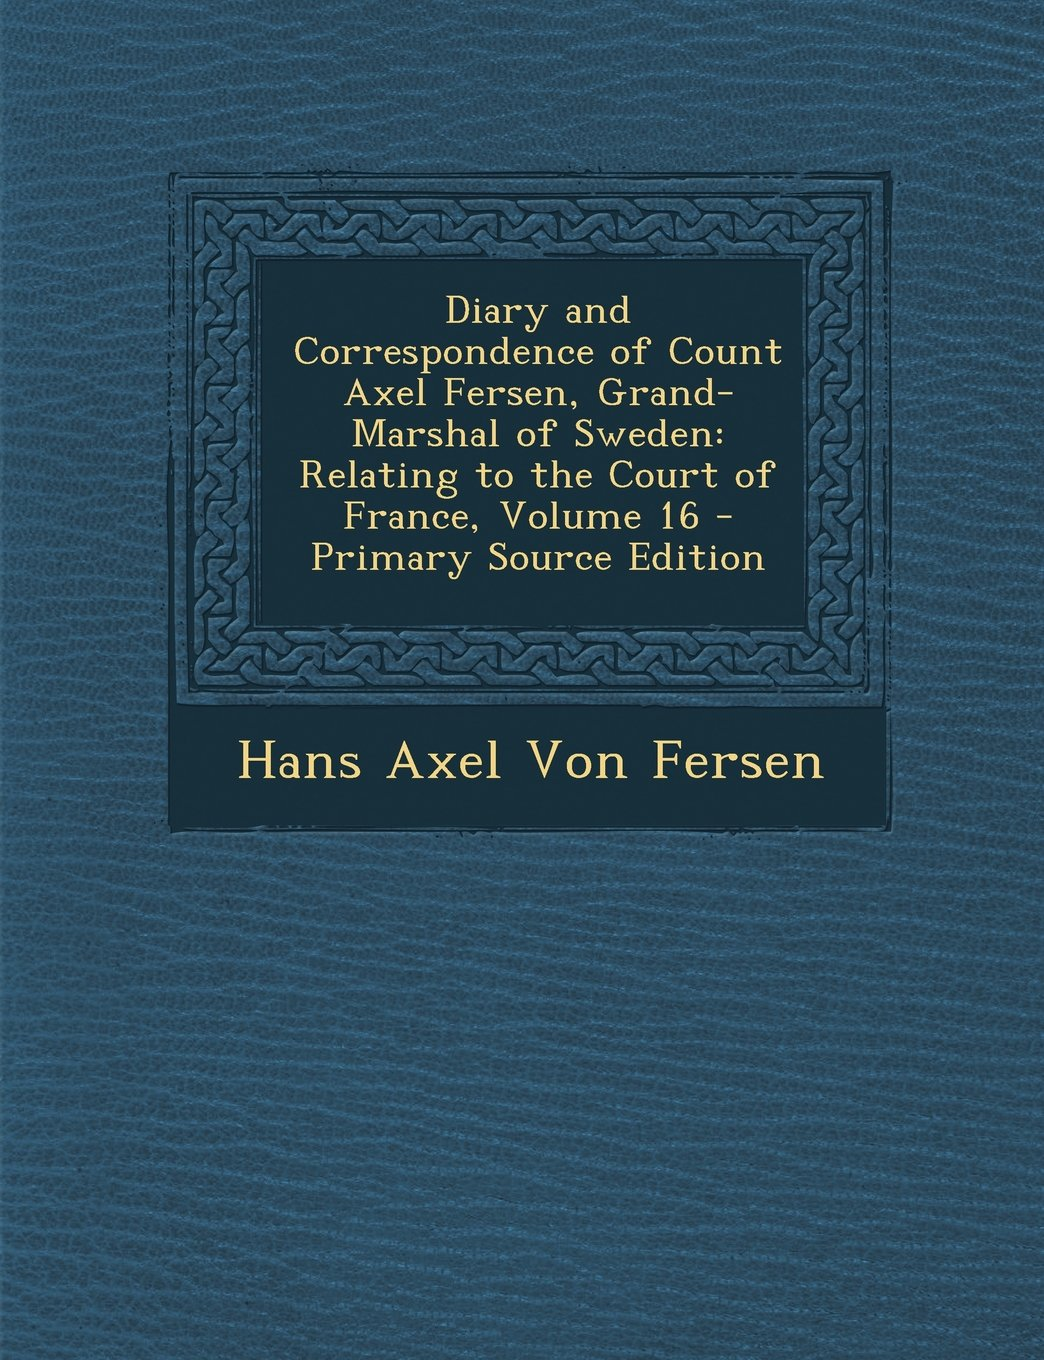 Download Diary and Correspondence of Count Axel Fersen, Grand-Marshal of Sweden: Relating to the Court of France, Volume 16 pdf